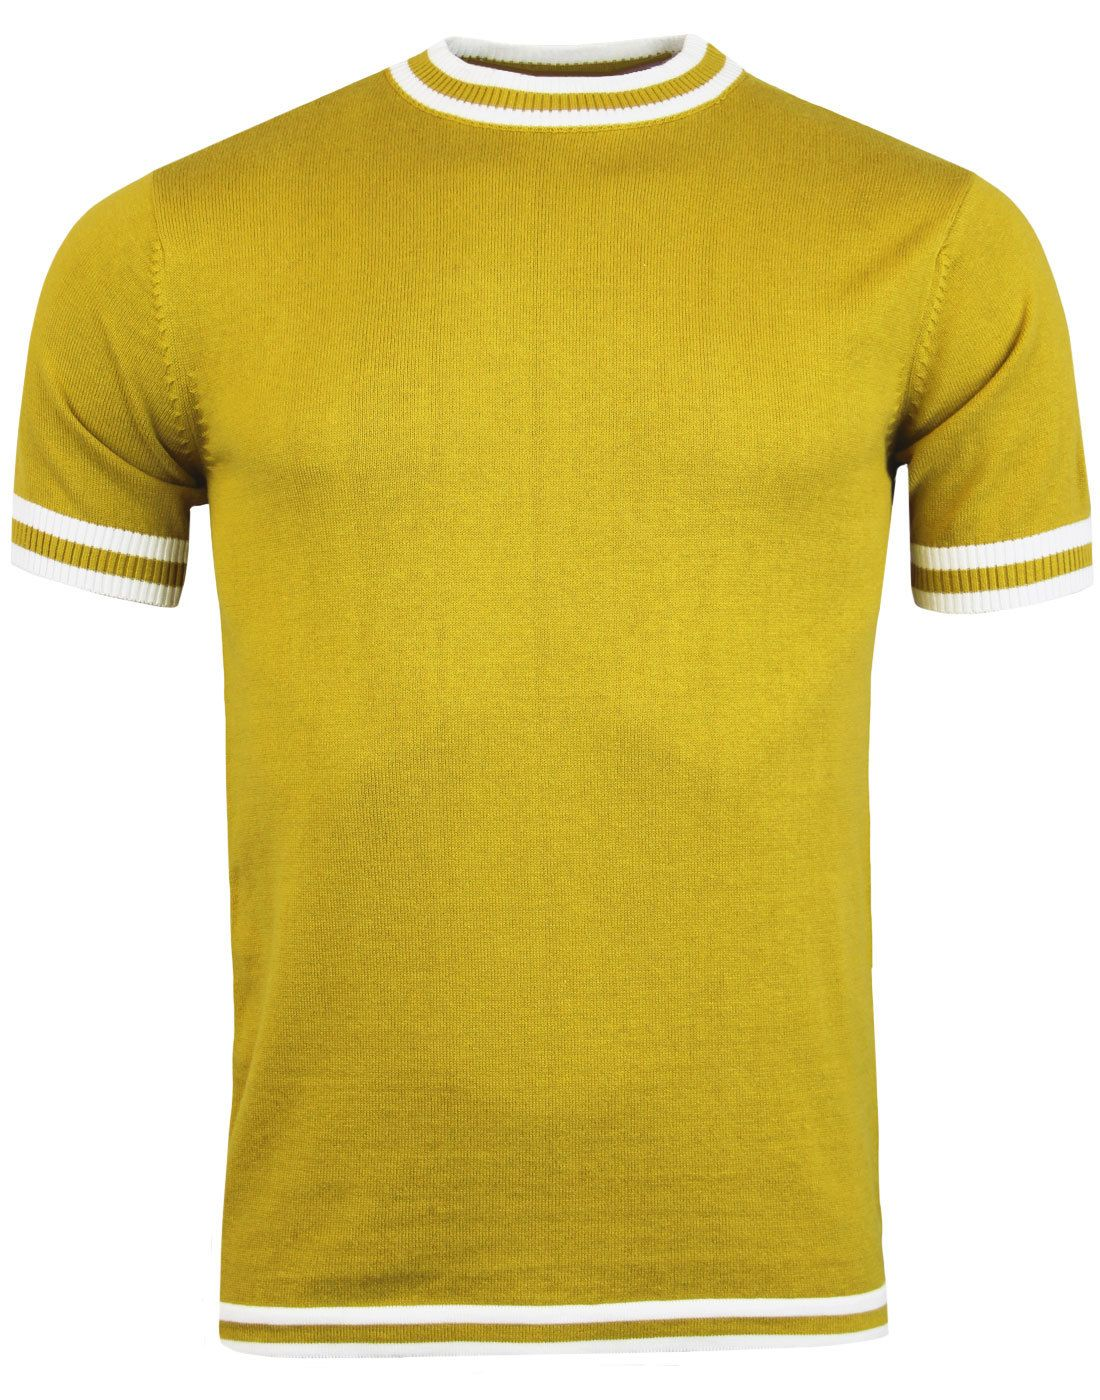 d28f31e804ba1 Madcap England  Moon  men s 60s mod knitted T-shirt in honey mustard. -  Retro white tipping to th